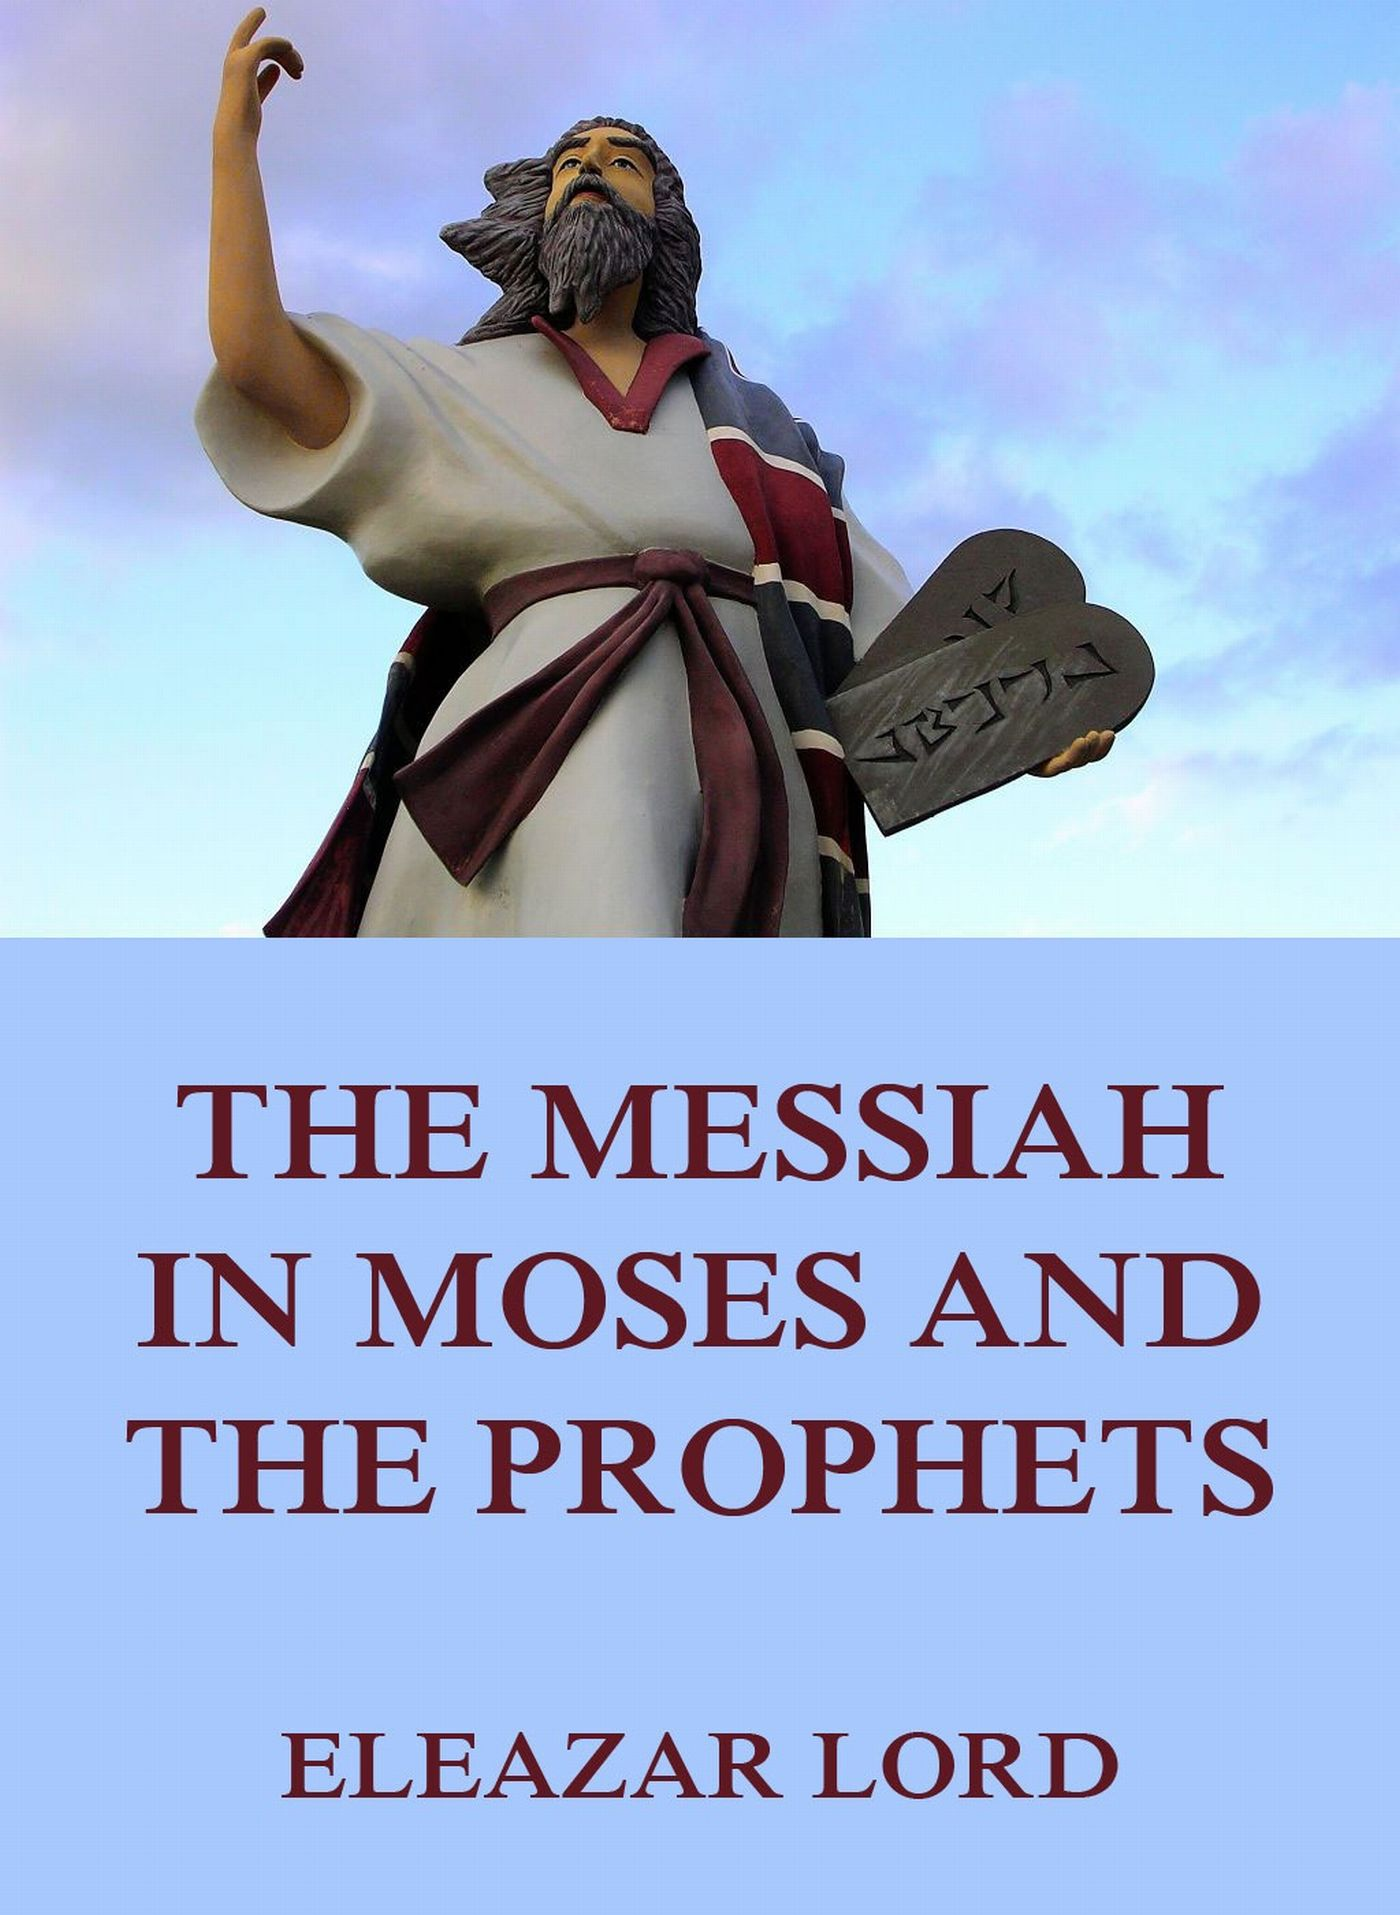 Eleazar Lord The Messiah In Moses And The Prophets han jin h six minor prophets through the centuries nahum habakkuk zephaniah haggai zechariah and malachi